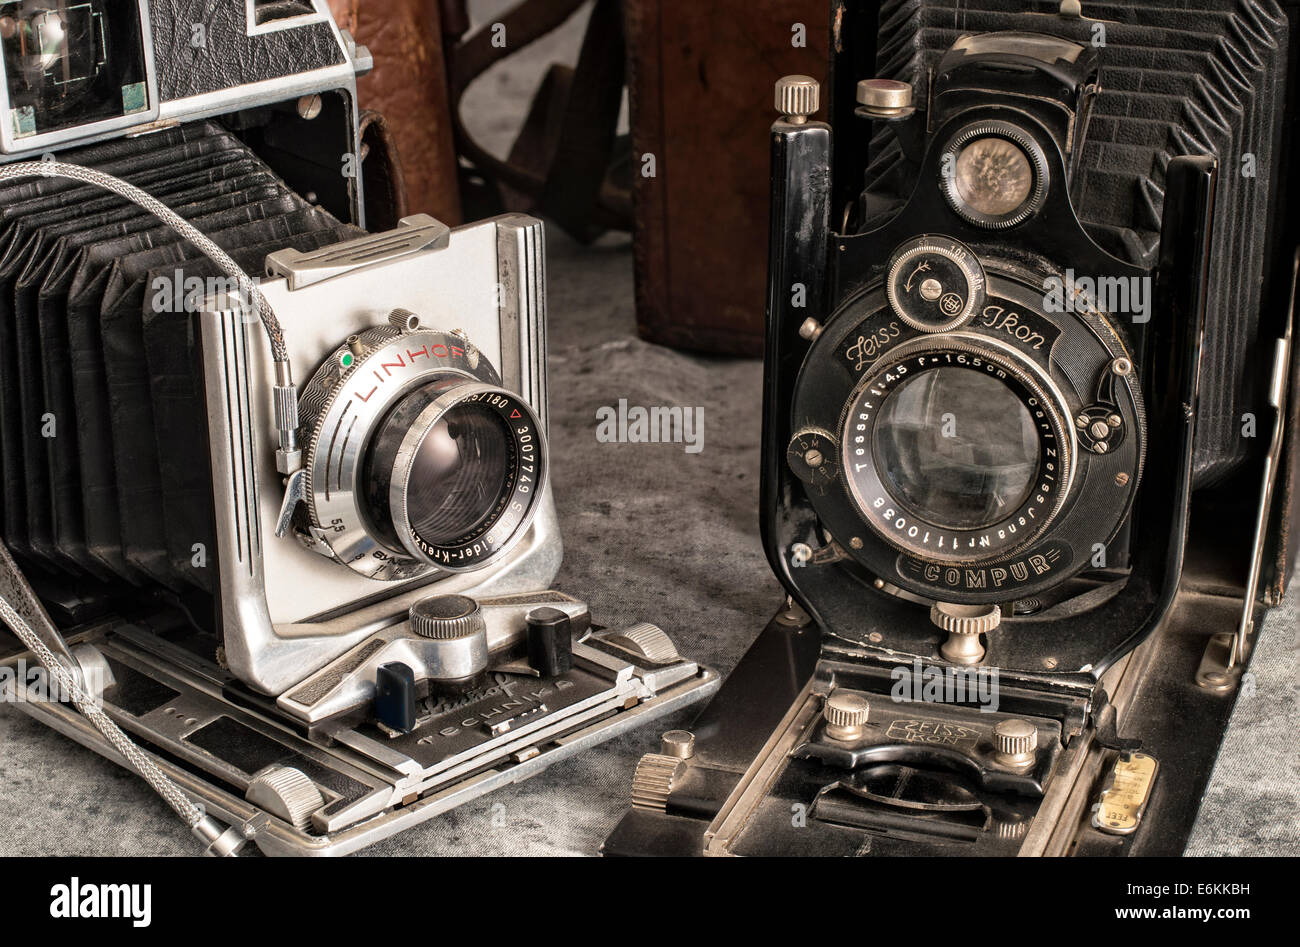 Old vintage professional sheet film cameras - Linhof and Zeiss Ikon - Stock Image